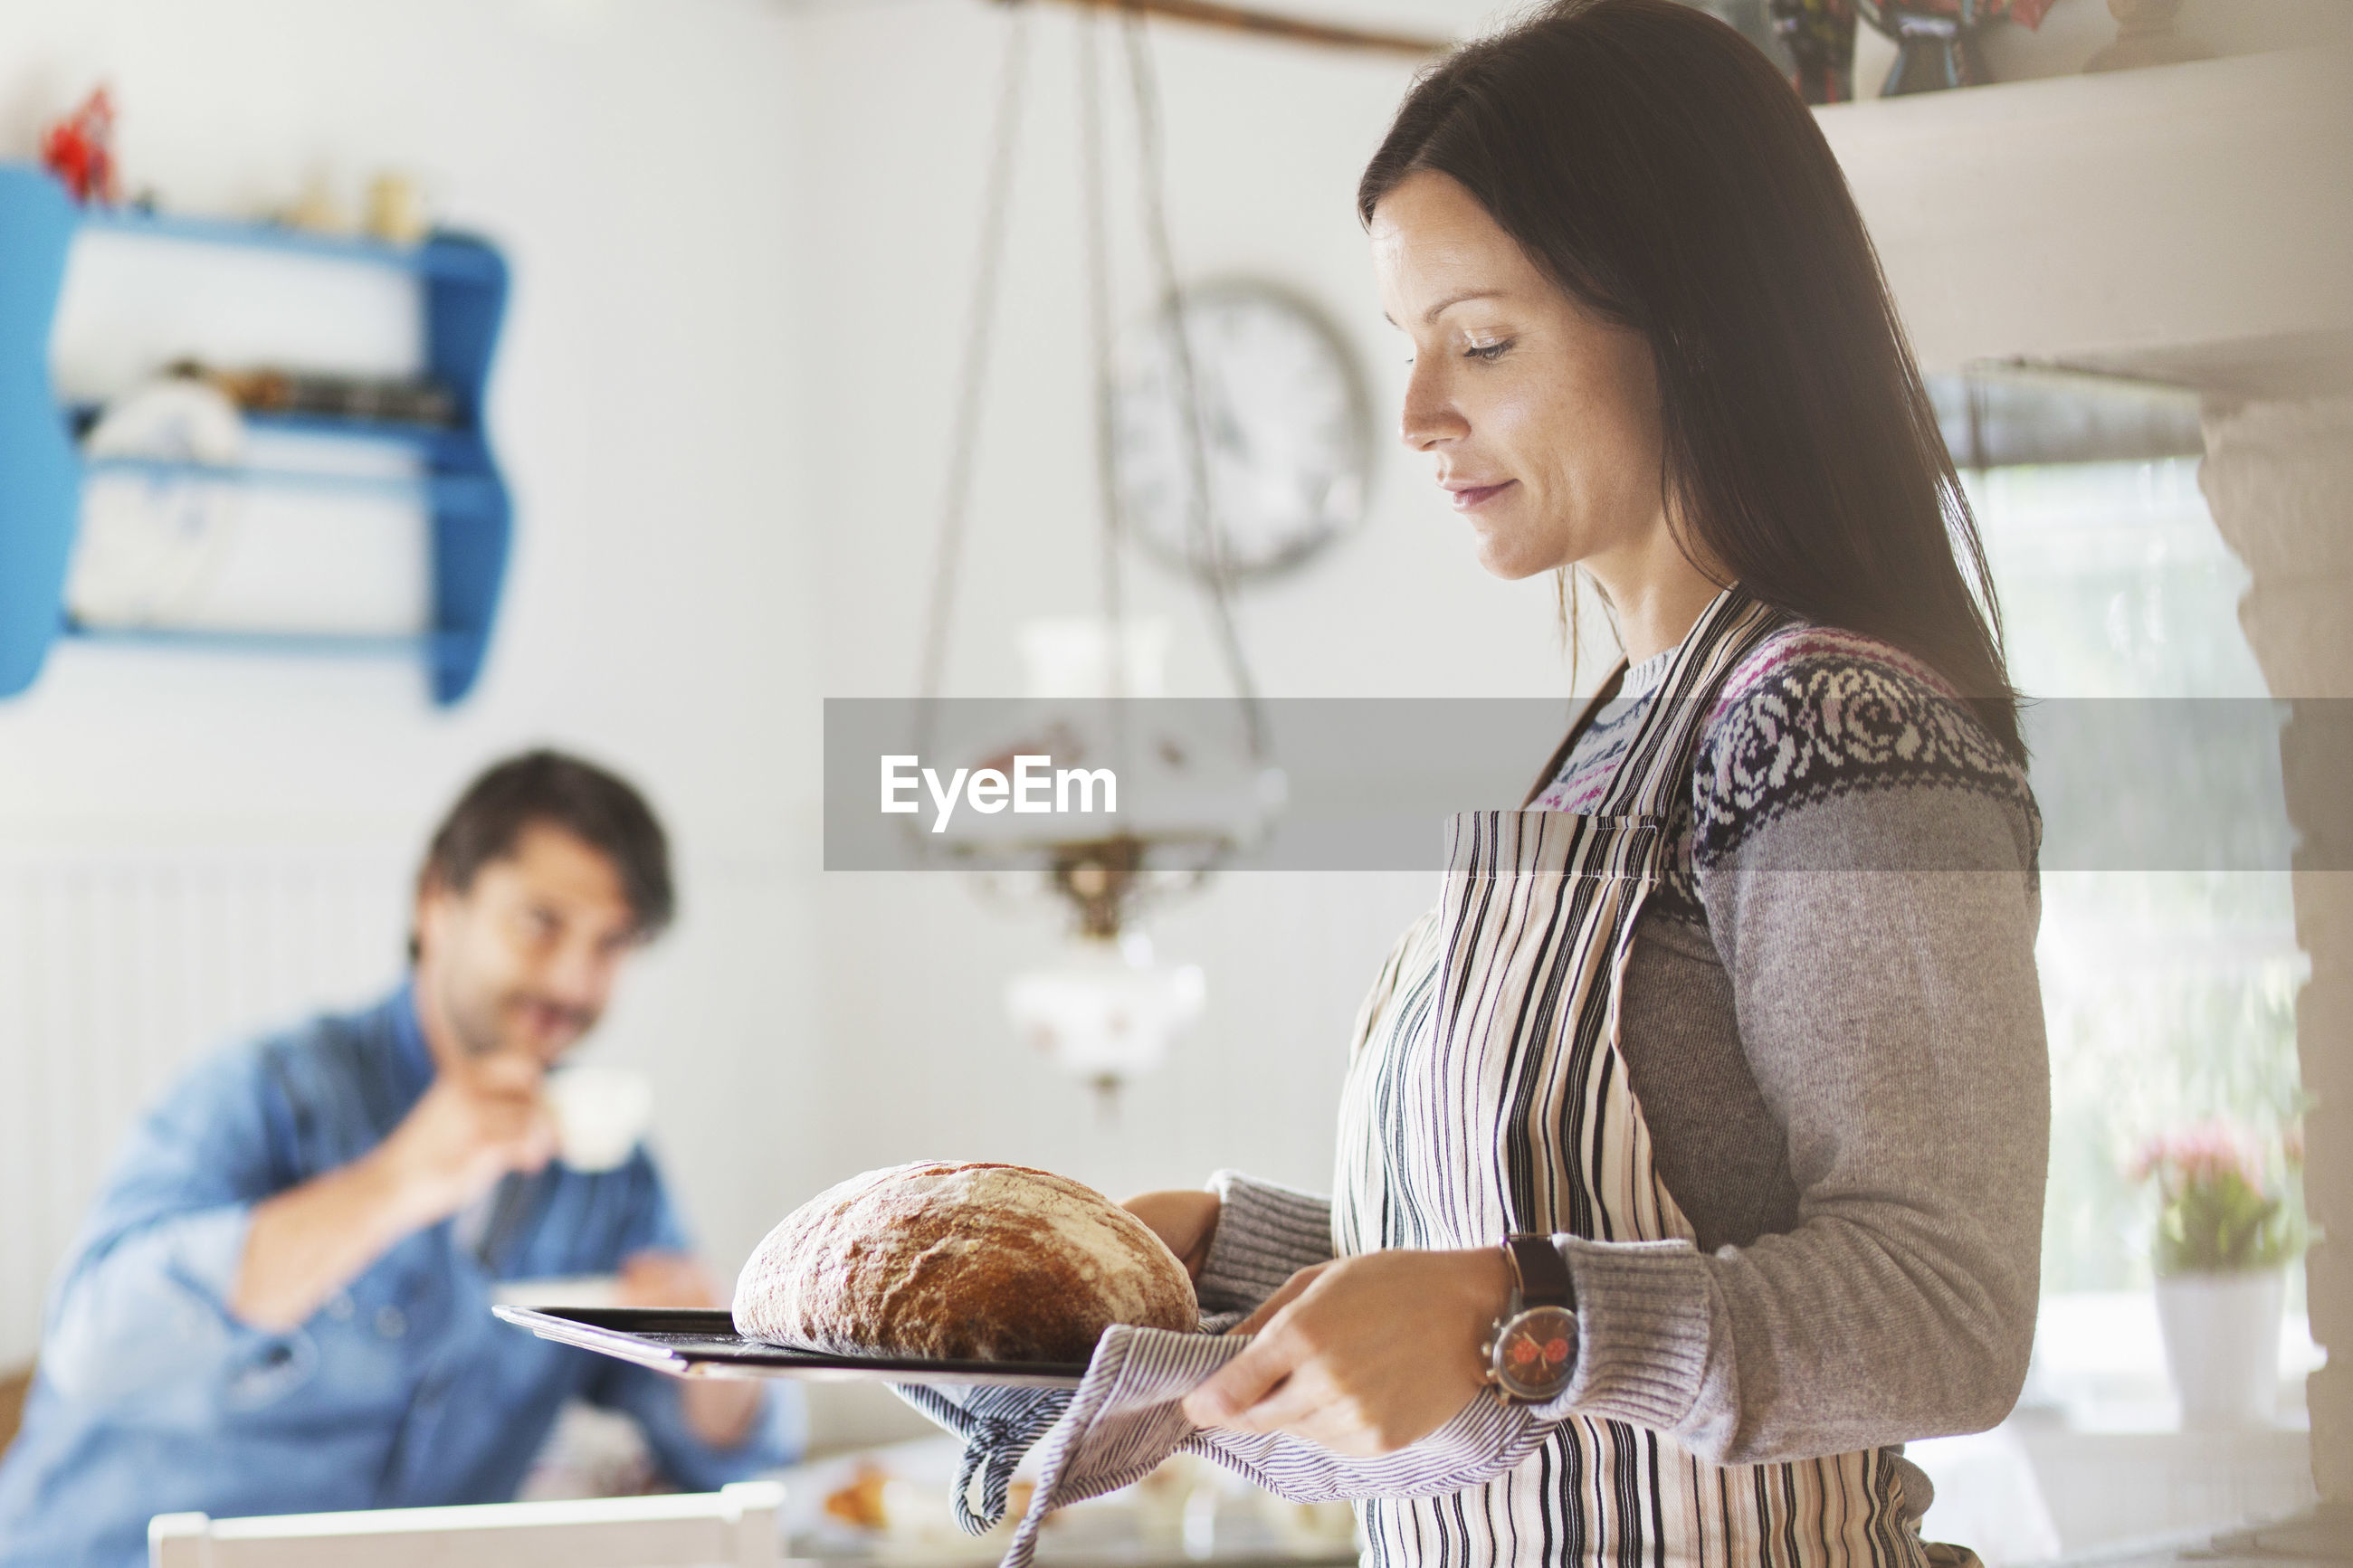 WOMAN HOLDING FOOD IN KITCHEN